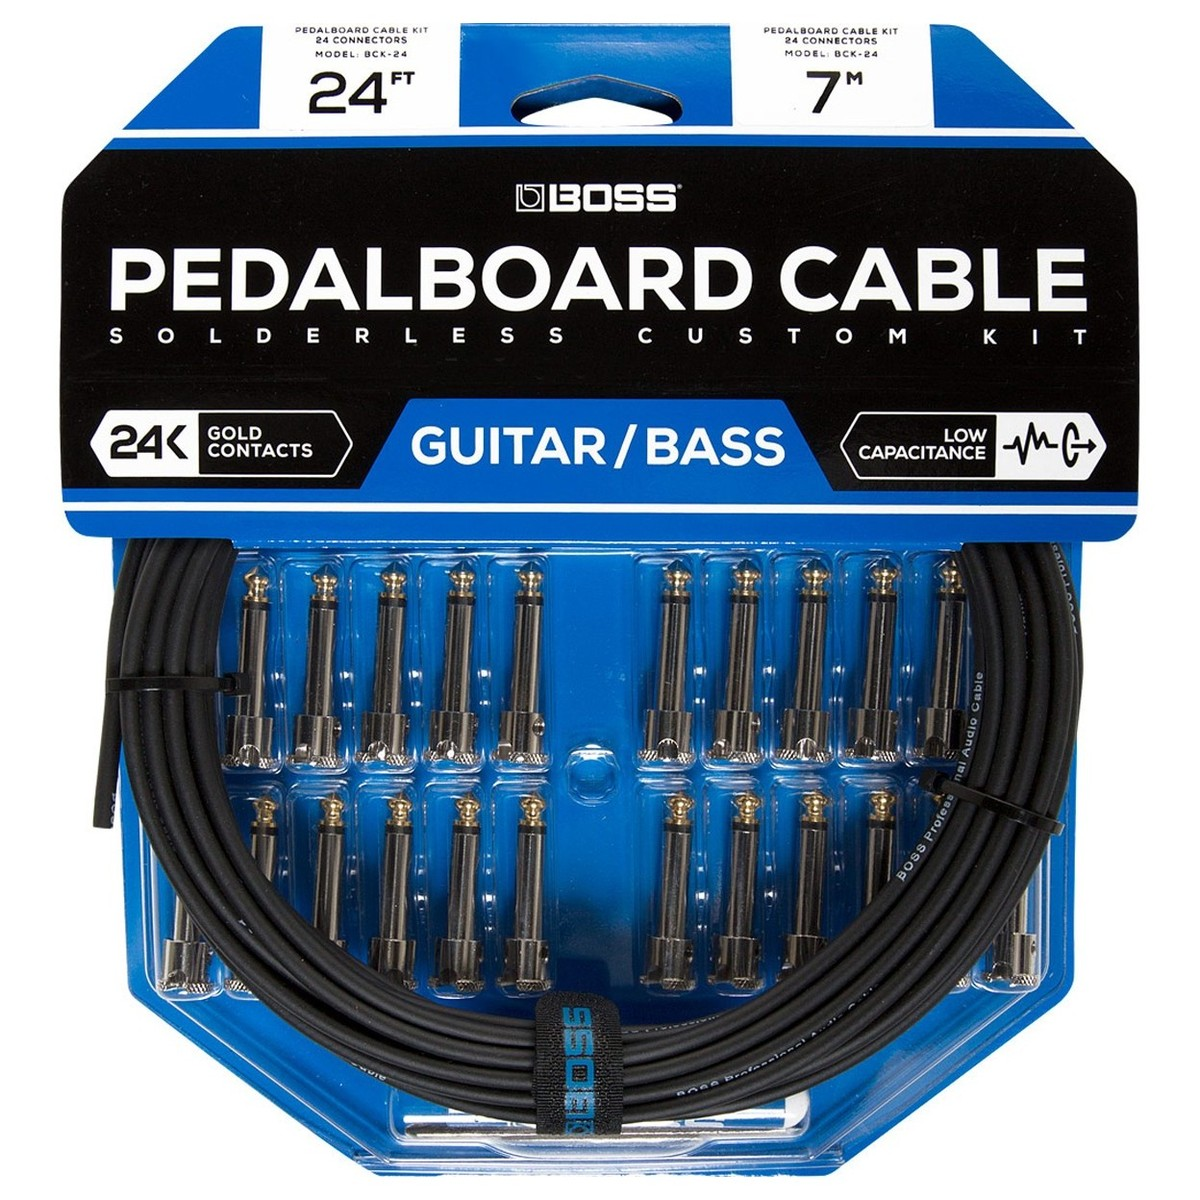 Boss Bck 24 Solderless Pedalboard Cable Kit At Gear4music